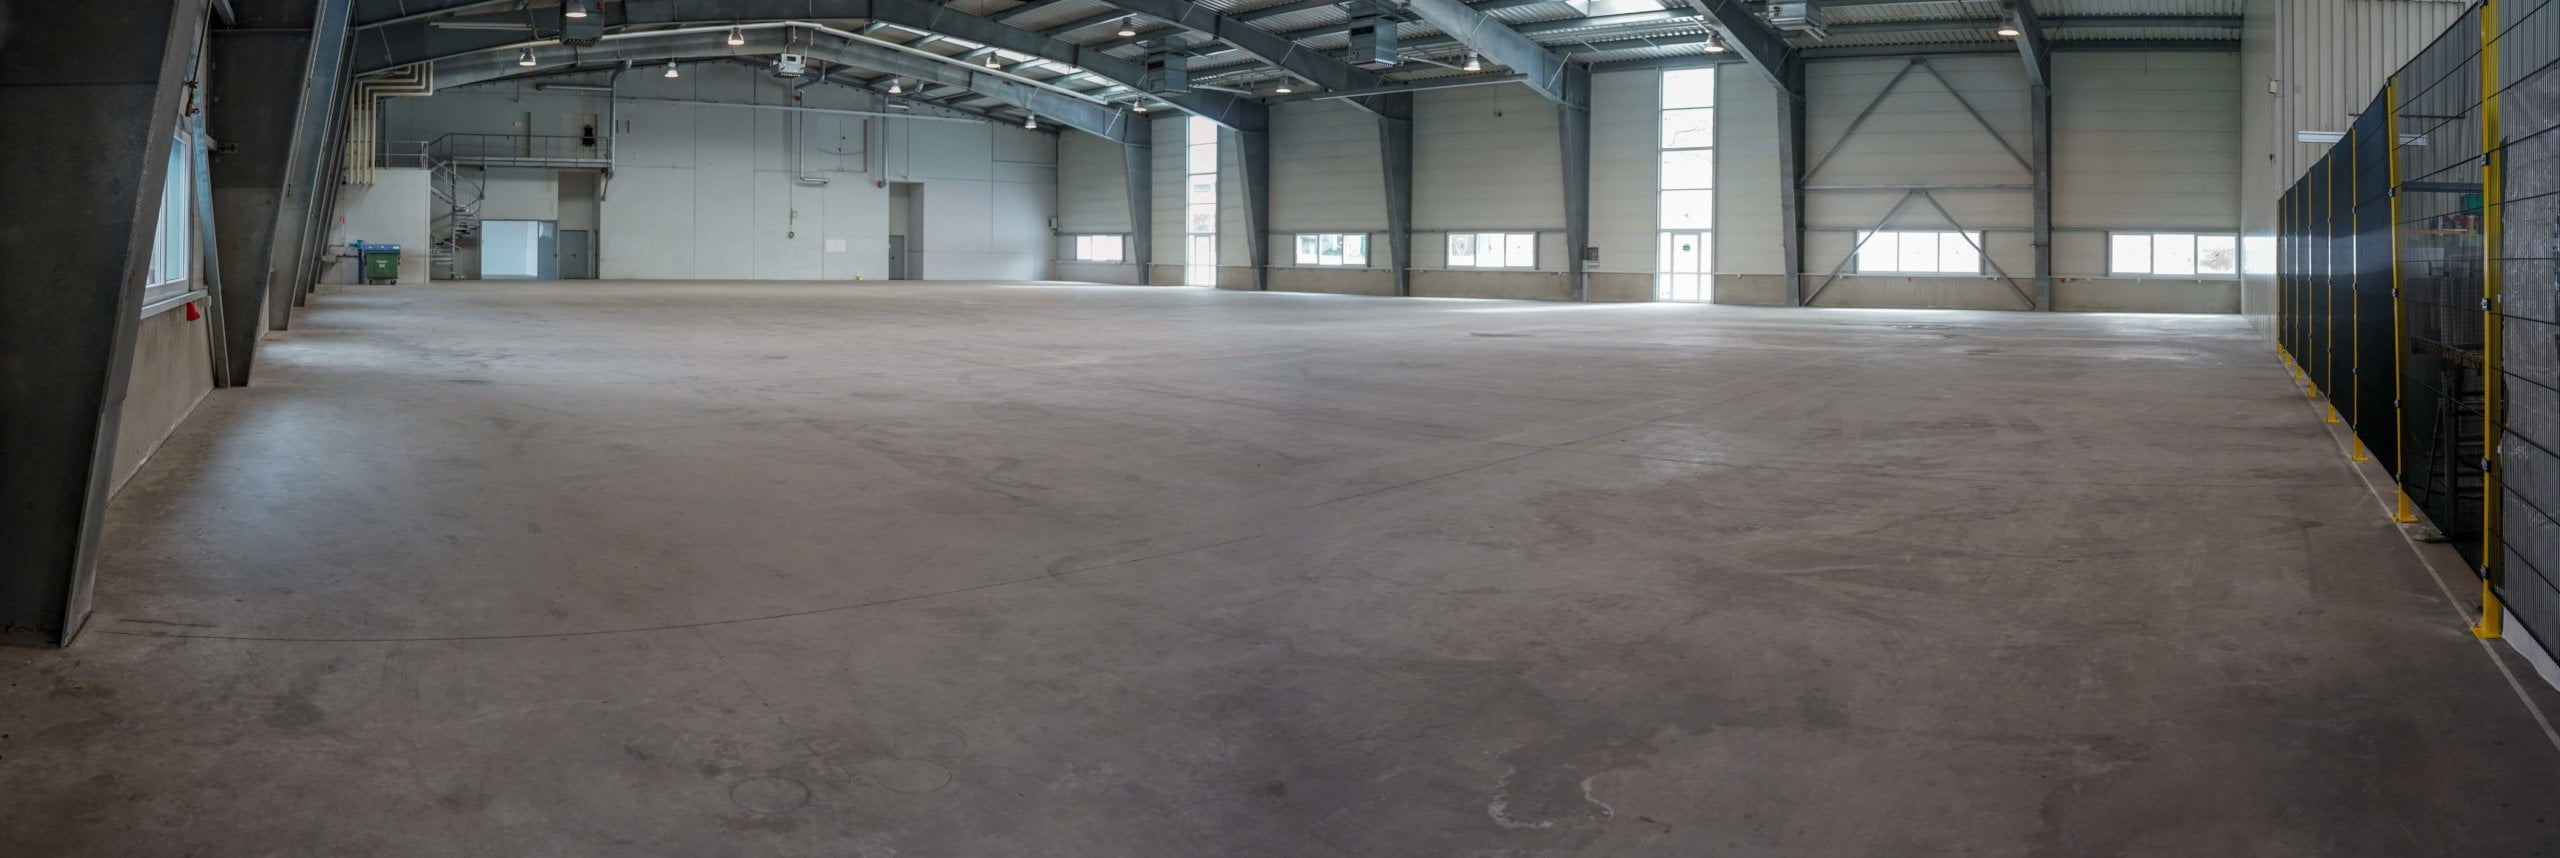 warehouse concrete floor panoramic